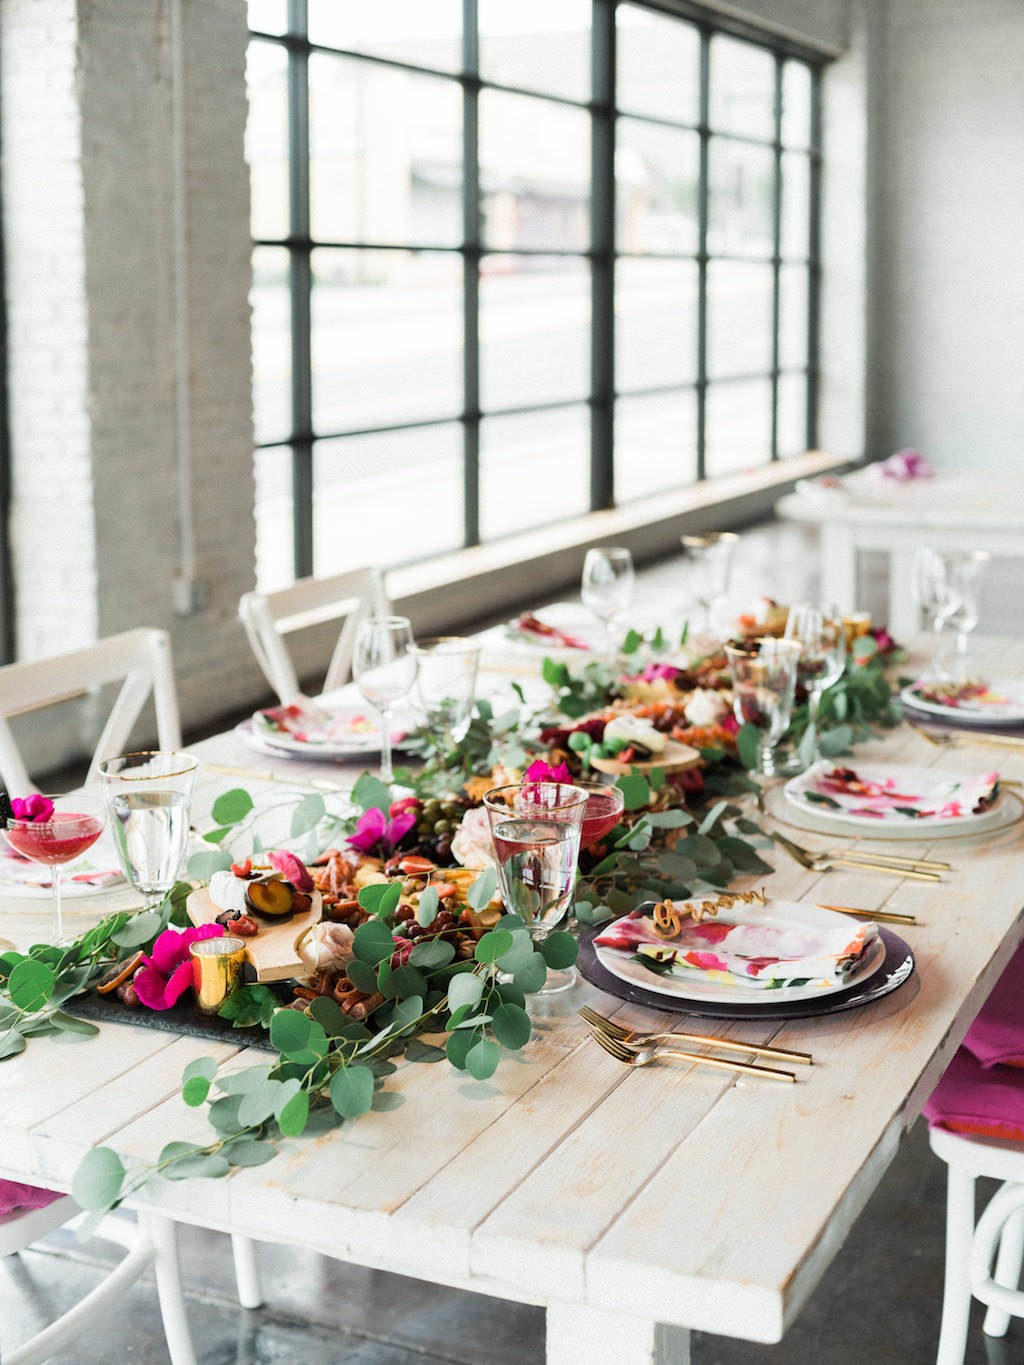 Modern Fuchsia Wedding Reception Table with Charcuterie Board with Greenery, Wooden Table, White Cross Back Chairs, Pink Linens | Lakeland Florida Wedding Caterer Tastes of Tampa Bay | Furniture and Dish Rentals A Chair Affair | Venue Haus 820